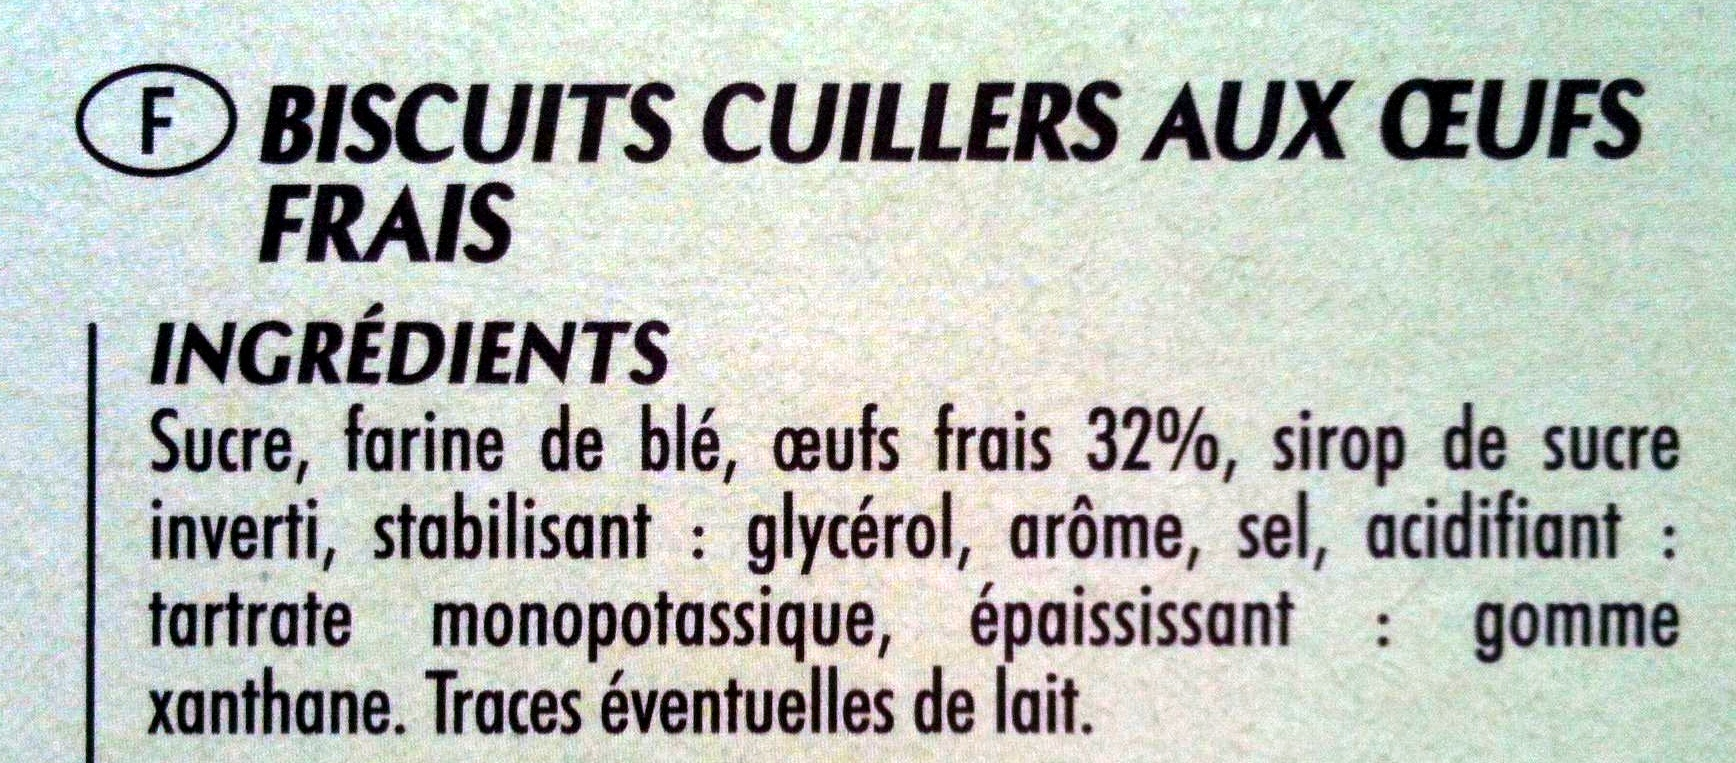 Biscuits cuillers aux oeufs frais - Ingredients - fr